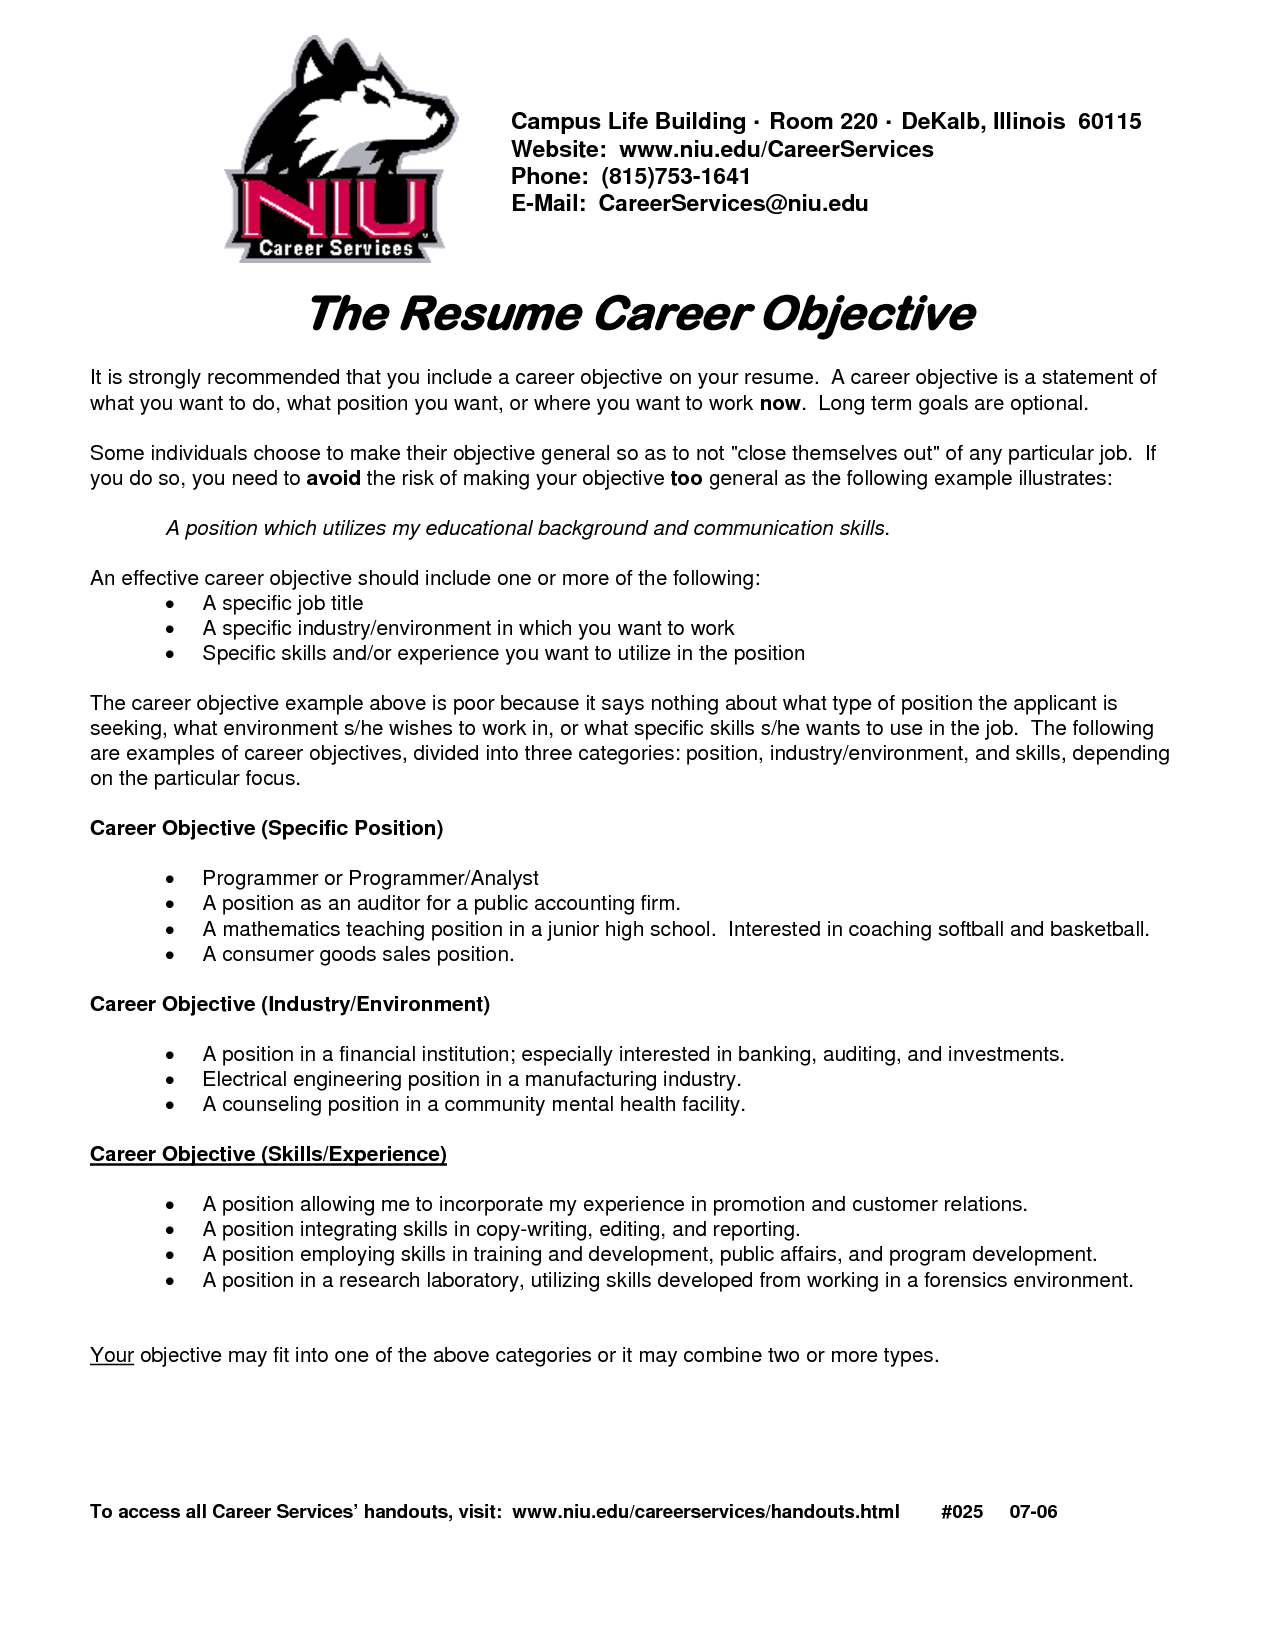 student resume objective examples resume new job - Best Objectives For Resumes